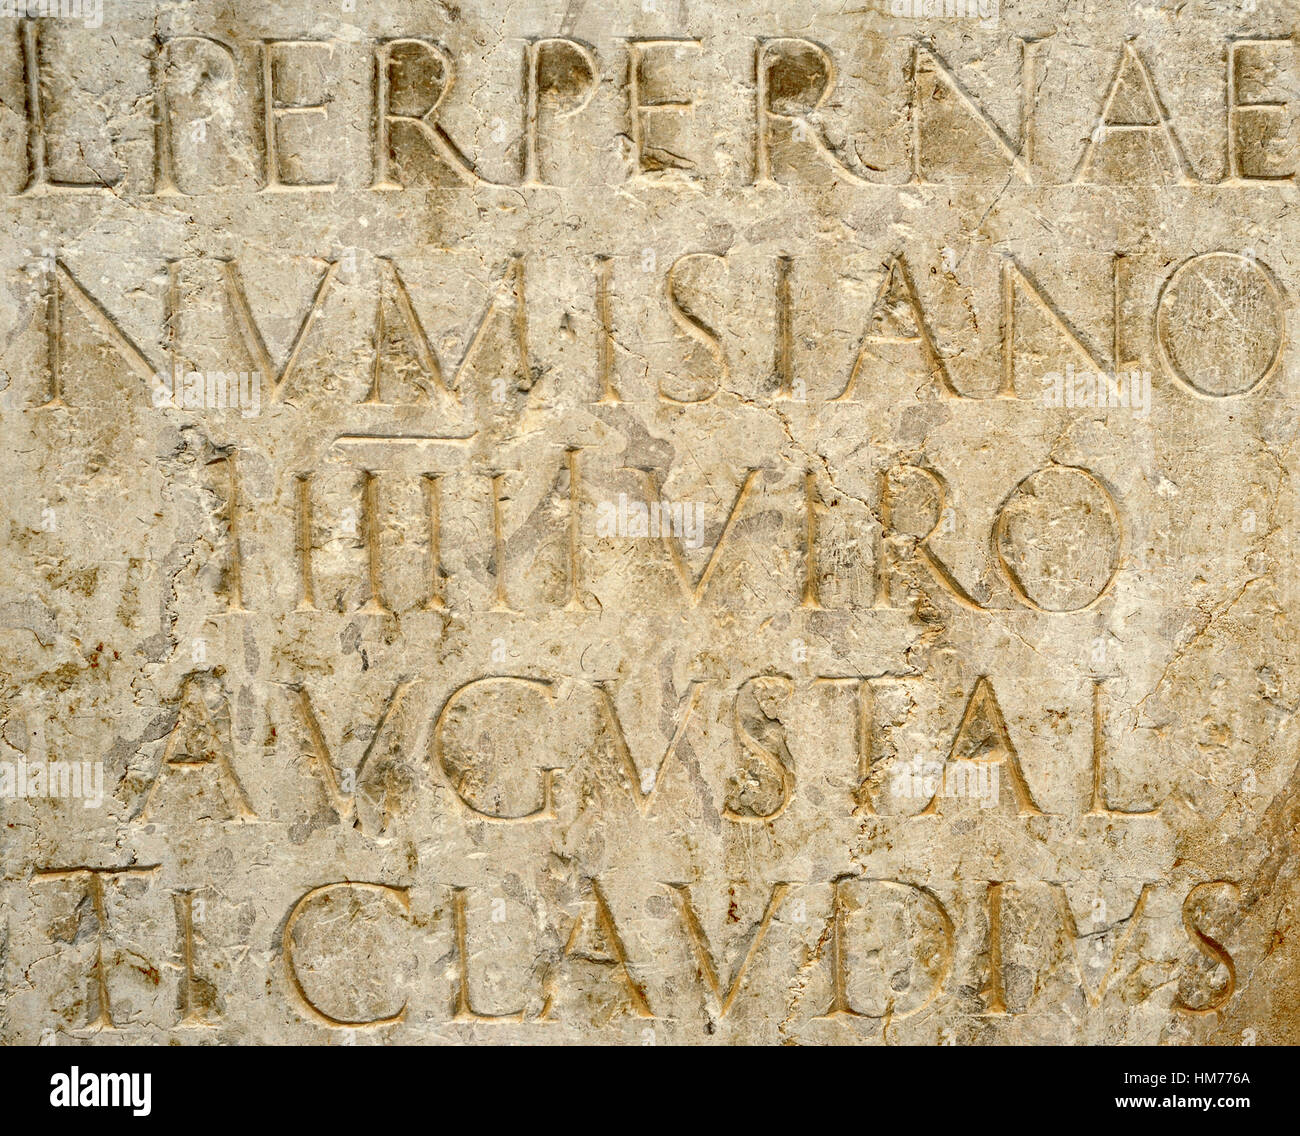 Roman statue pedestal. Dedicated to Lucius Perperna Numisianus, servir augustal( priest dedicated to the imperial - Stock Image